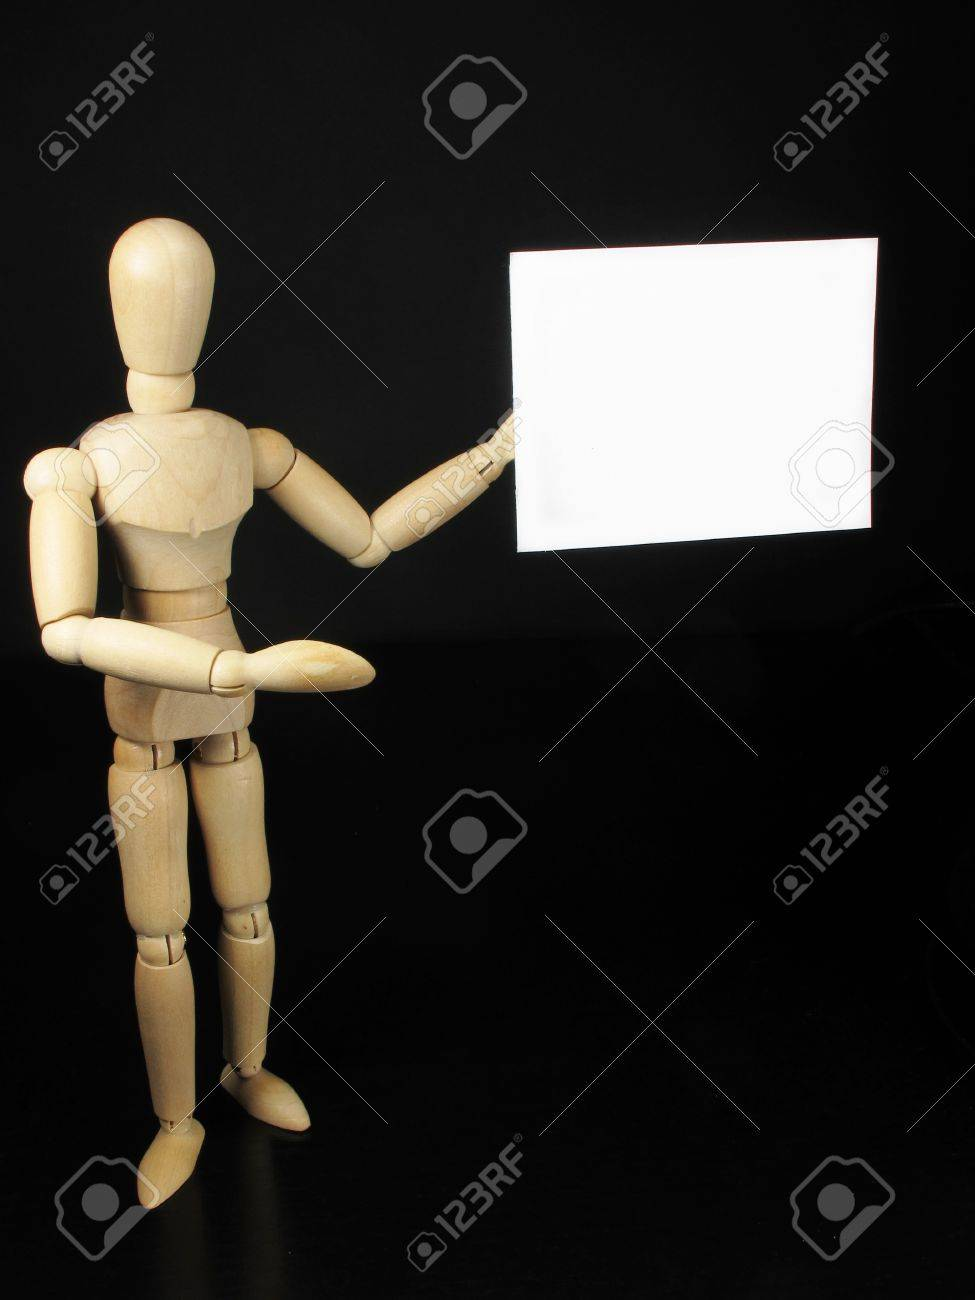 a humanoid doll with black background and white sign to write things Stock Photo - 9457995